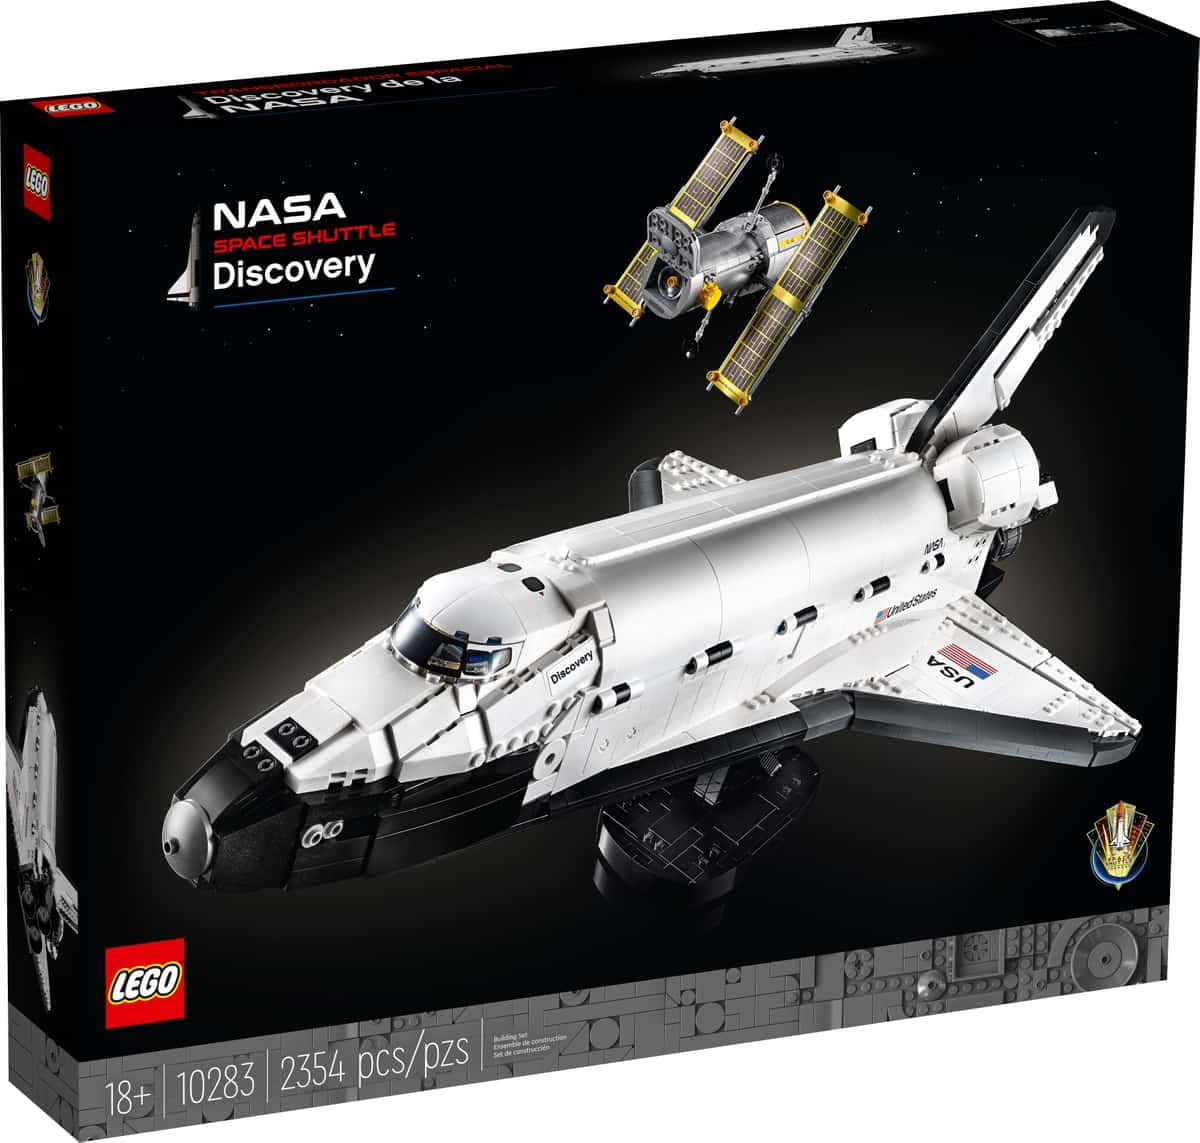 lego 10283 nasa space shuttle discovery